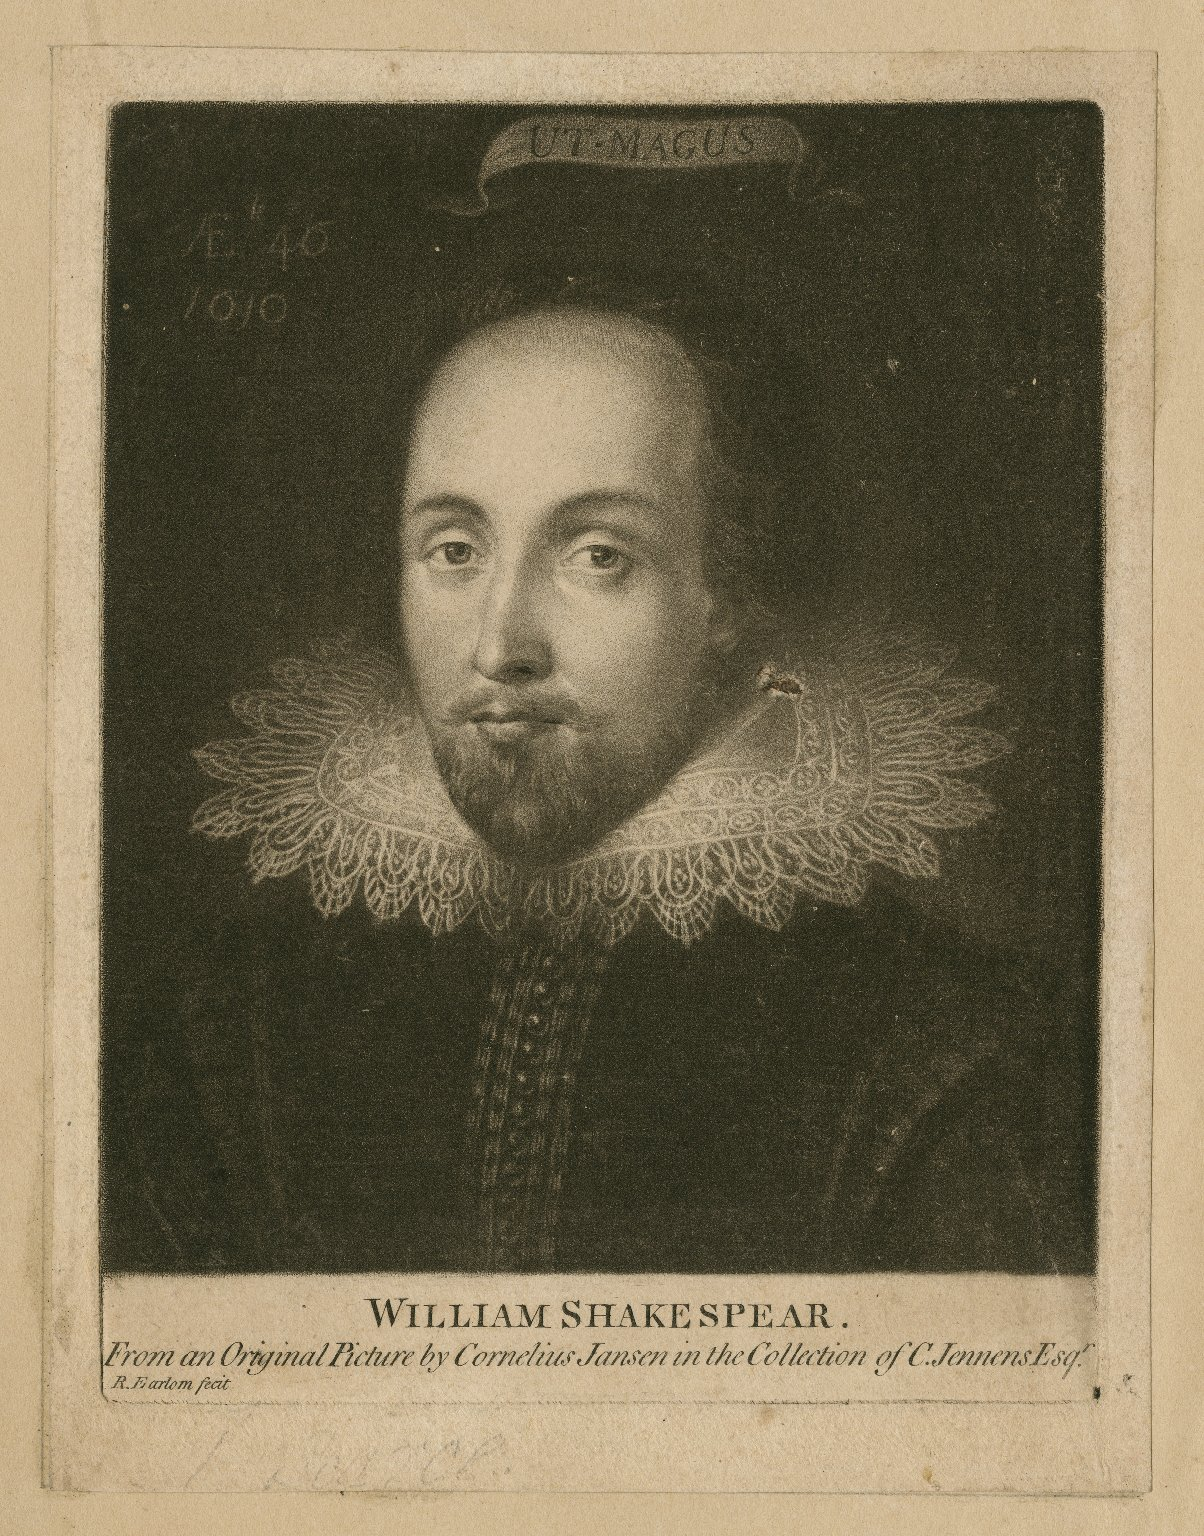 William Shakespear [graphic] / from an original picture by Cornelius Jansen in the collection of C. Jennens, esqr. ; R. Earlom fecit.